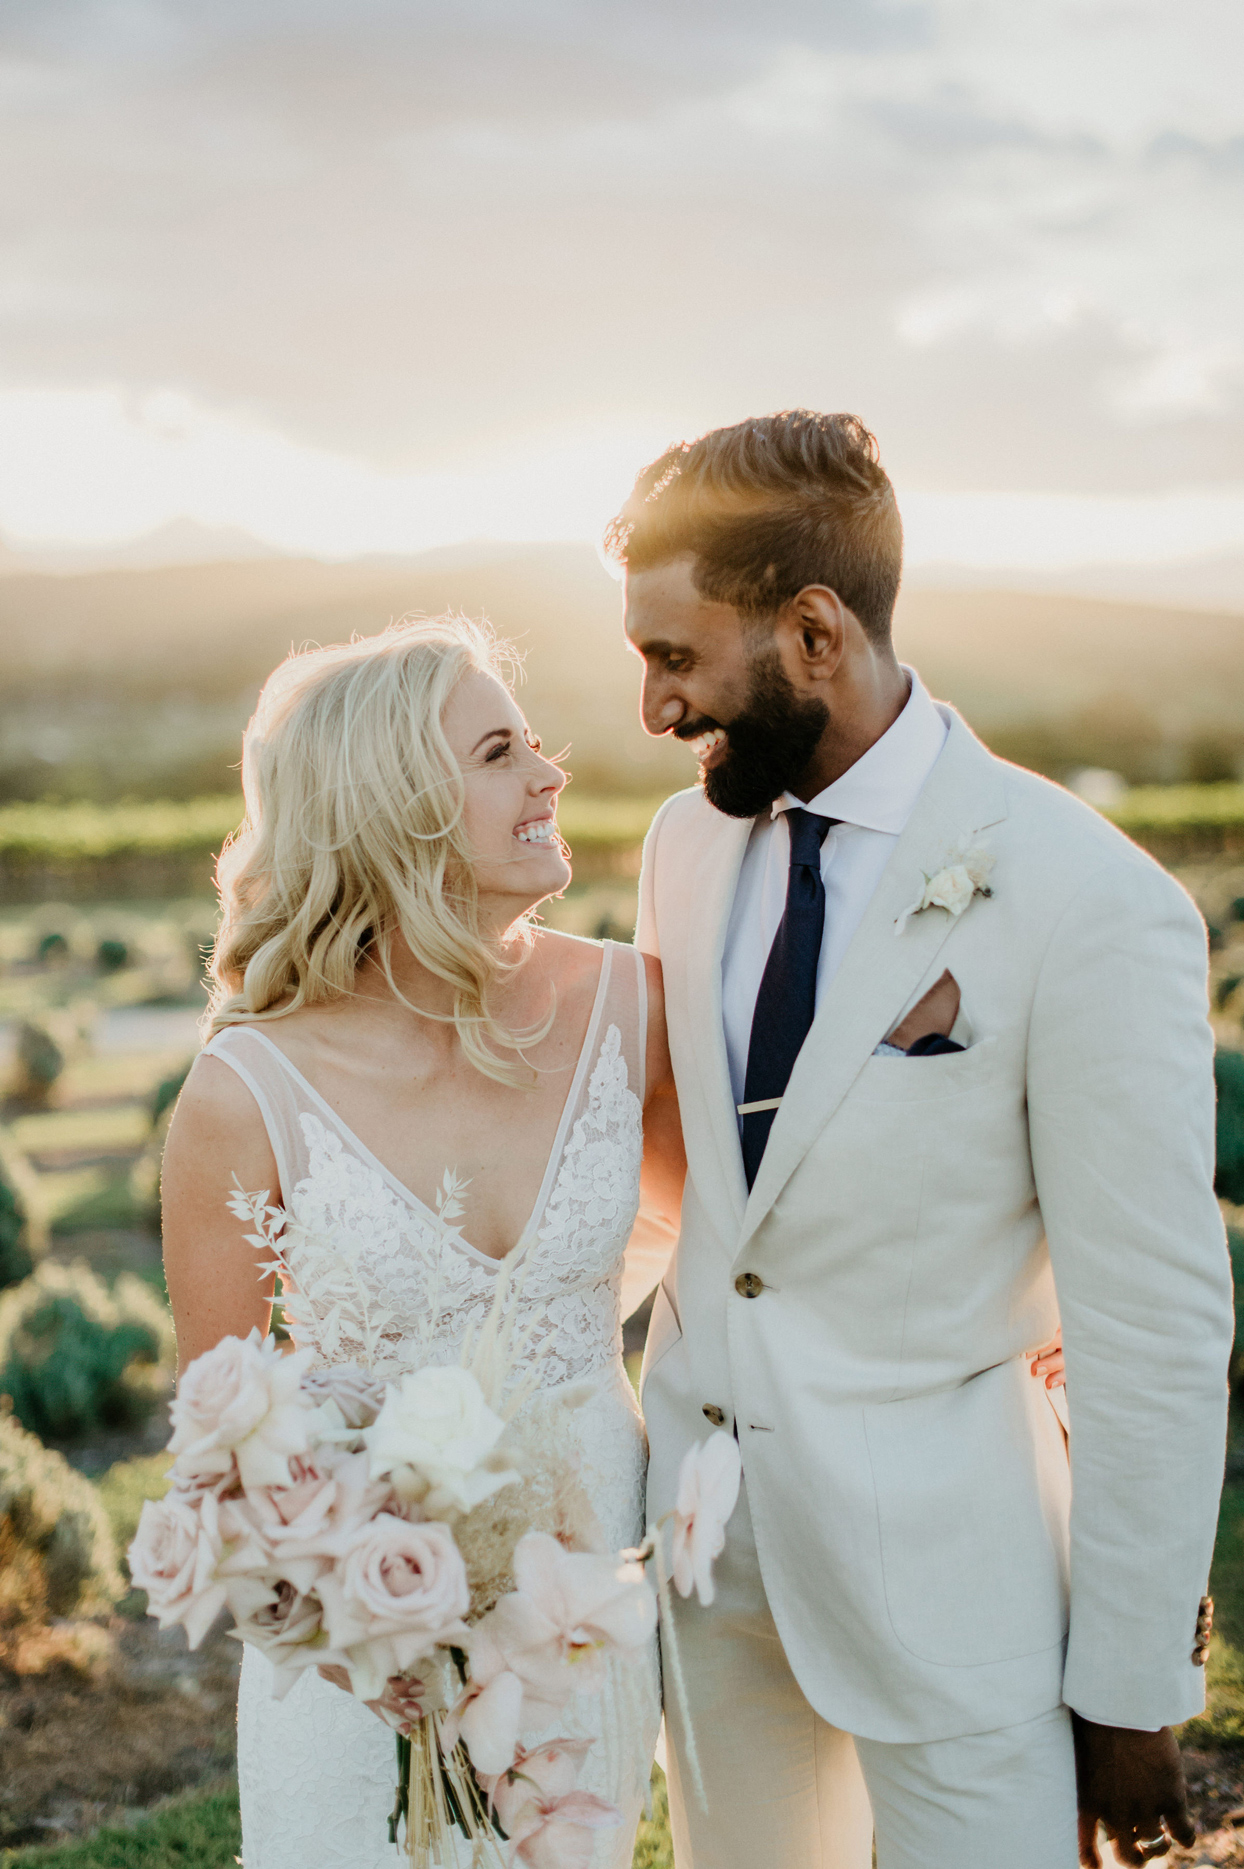 bride and groom smile at each other with sun shining behind them